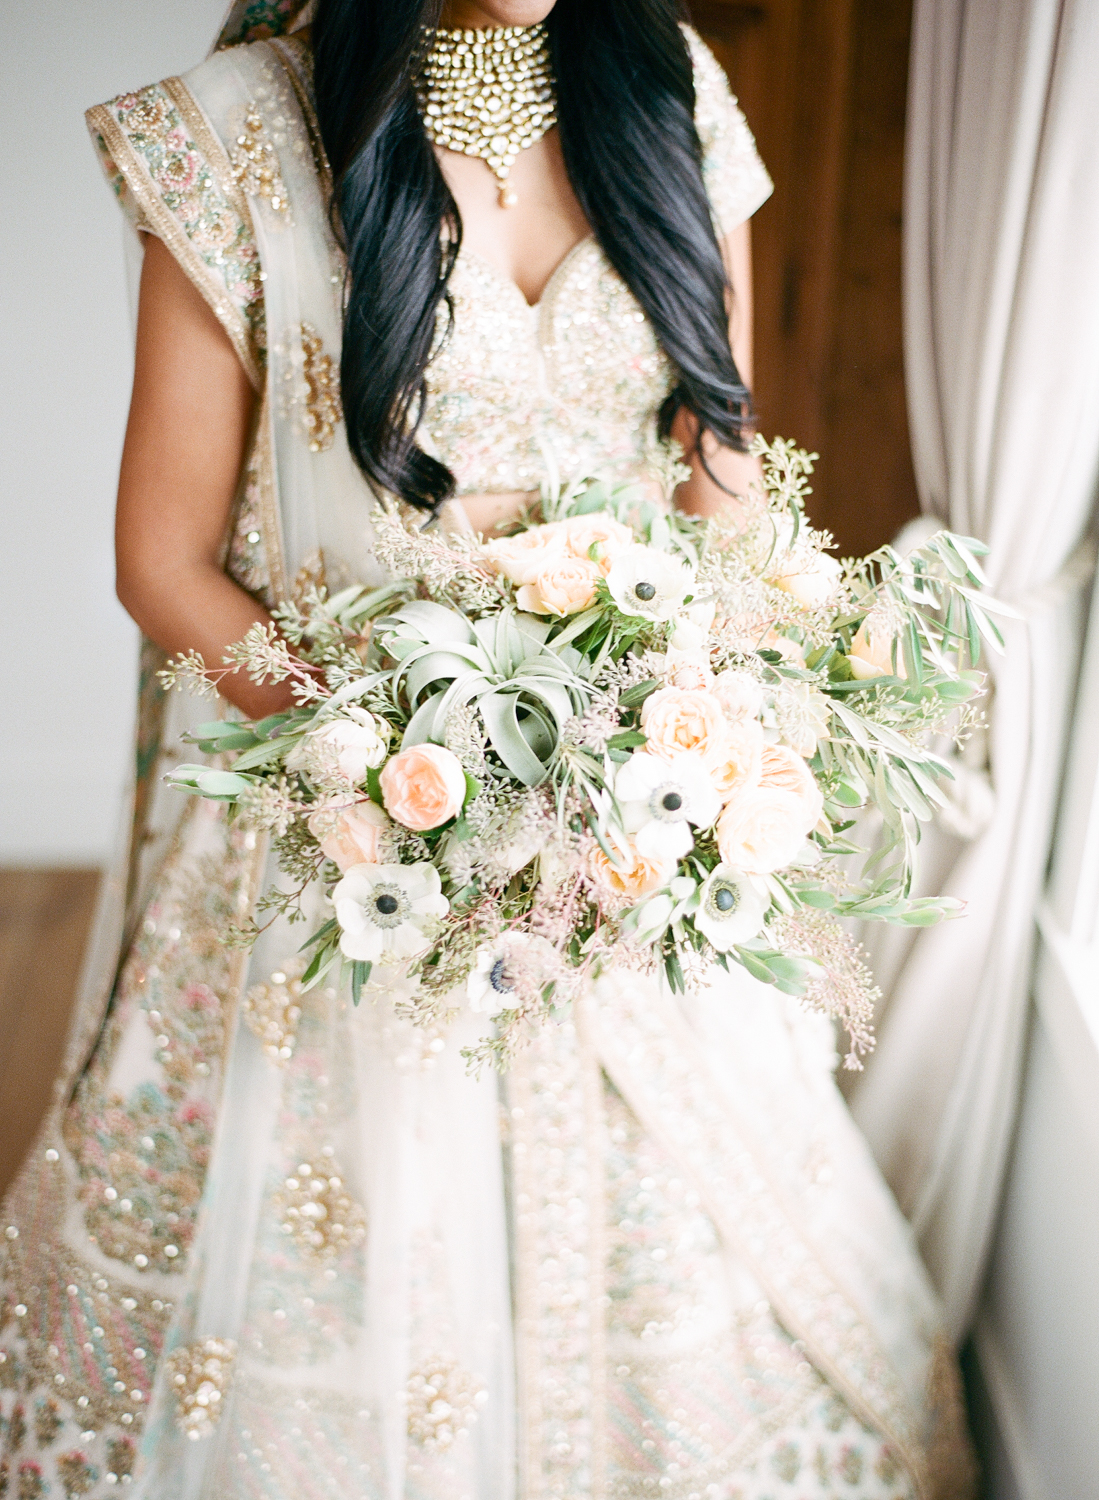 white, blush, and peach blooms with greenery accents and silk ribbon finish